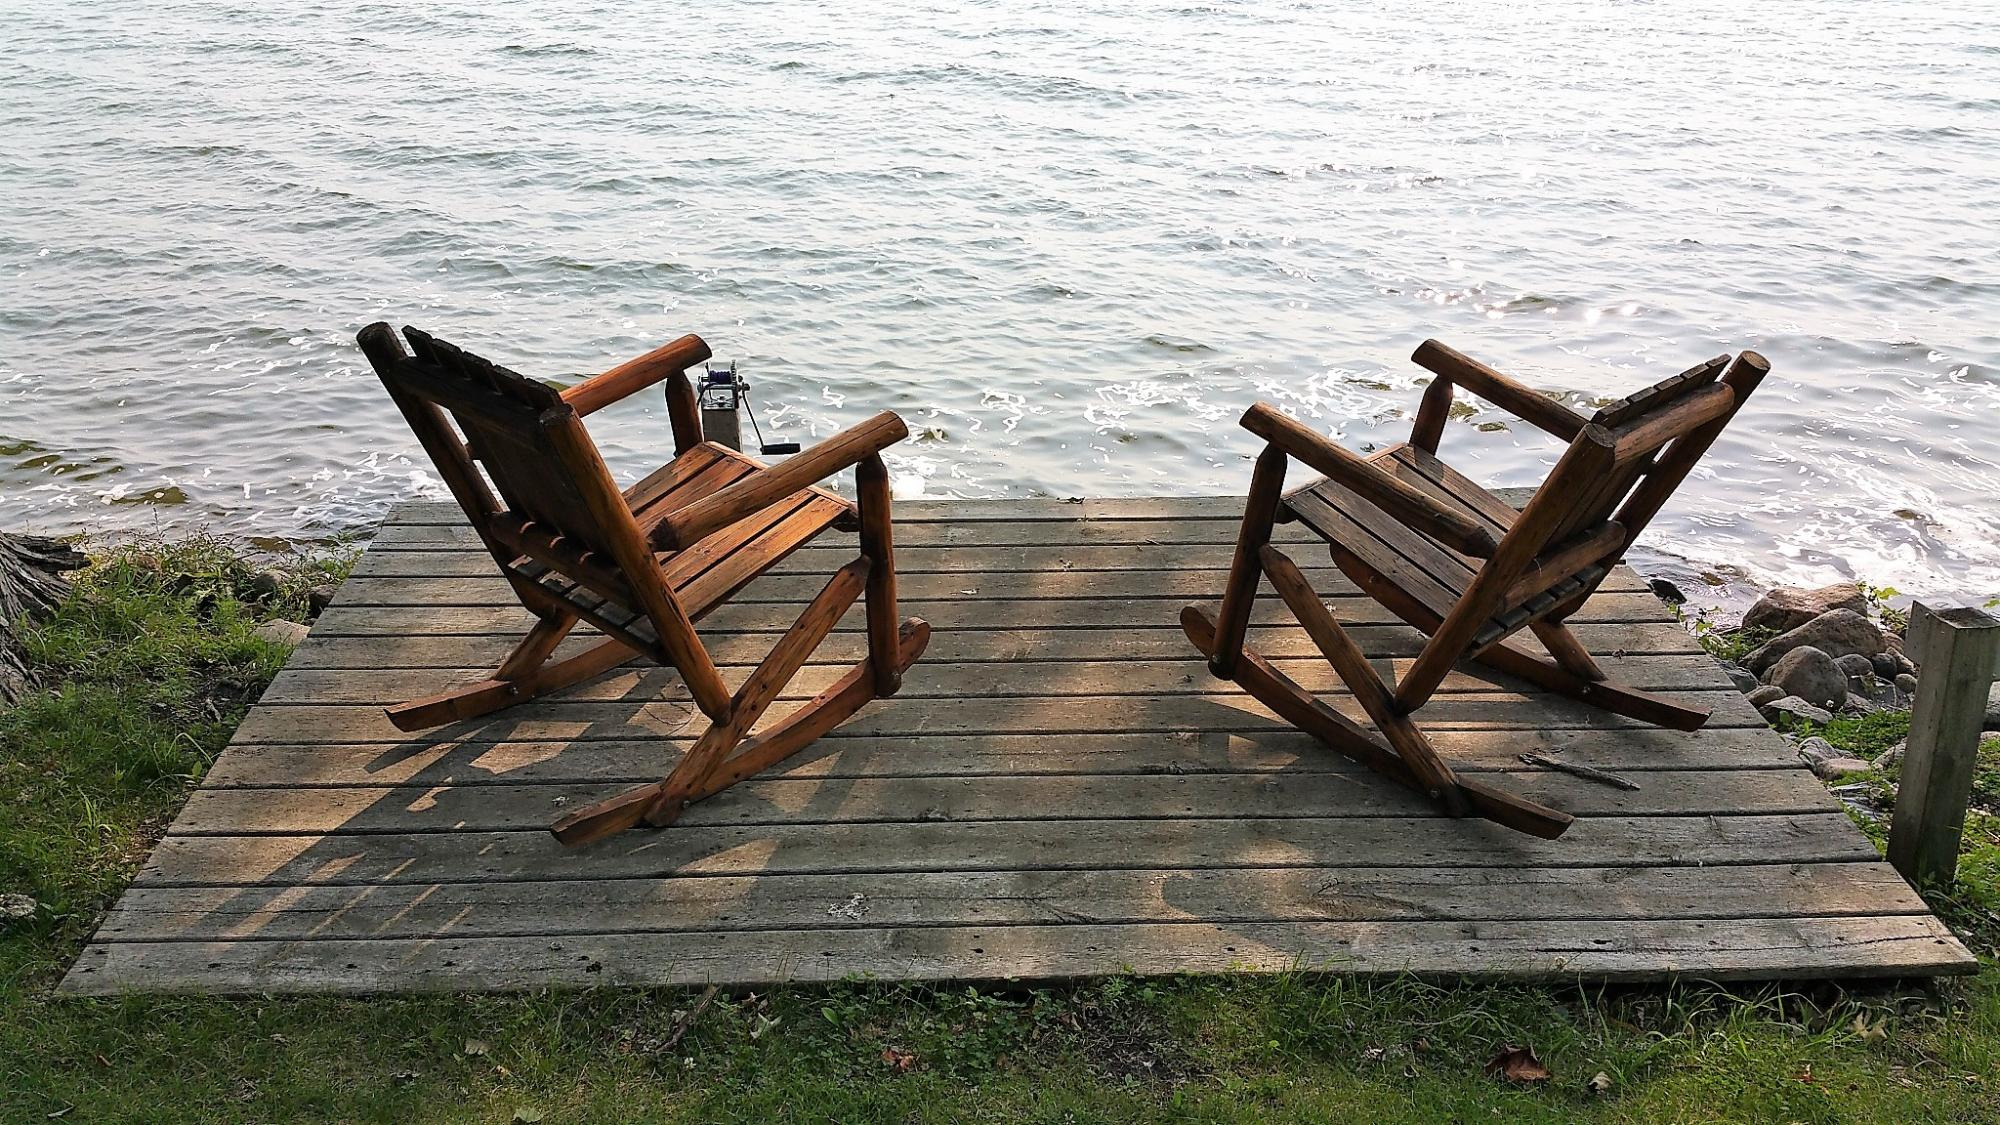 chairs_by_lake.jpg